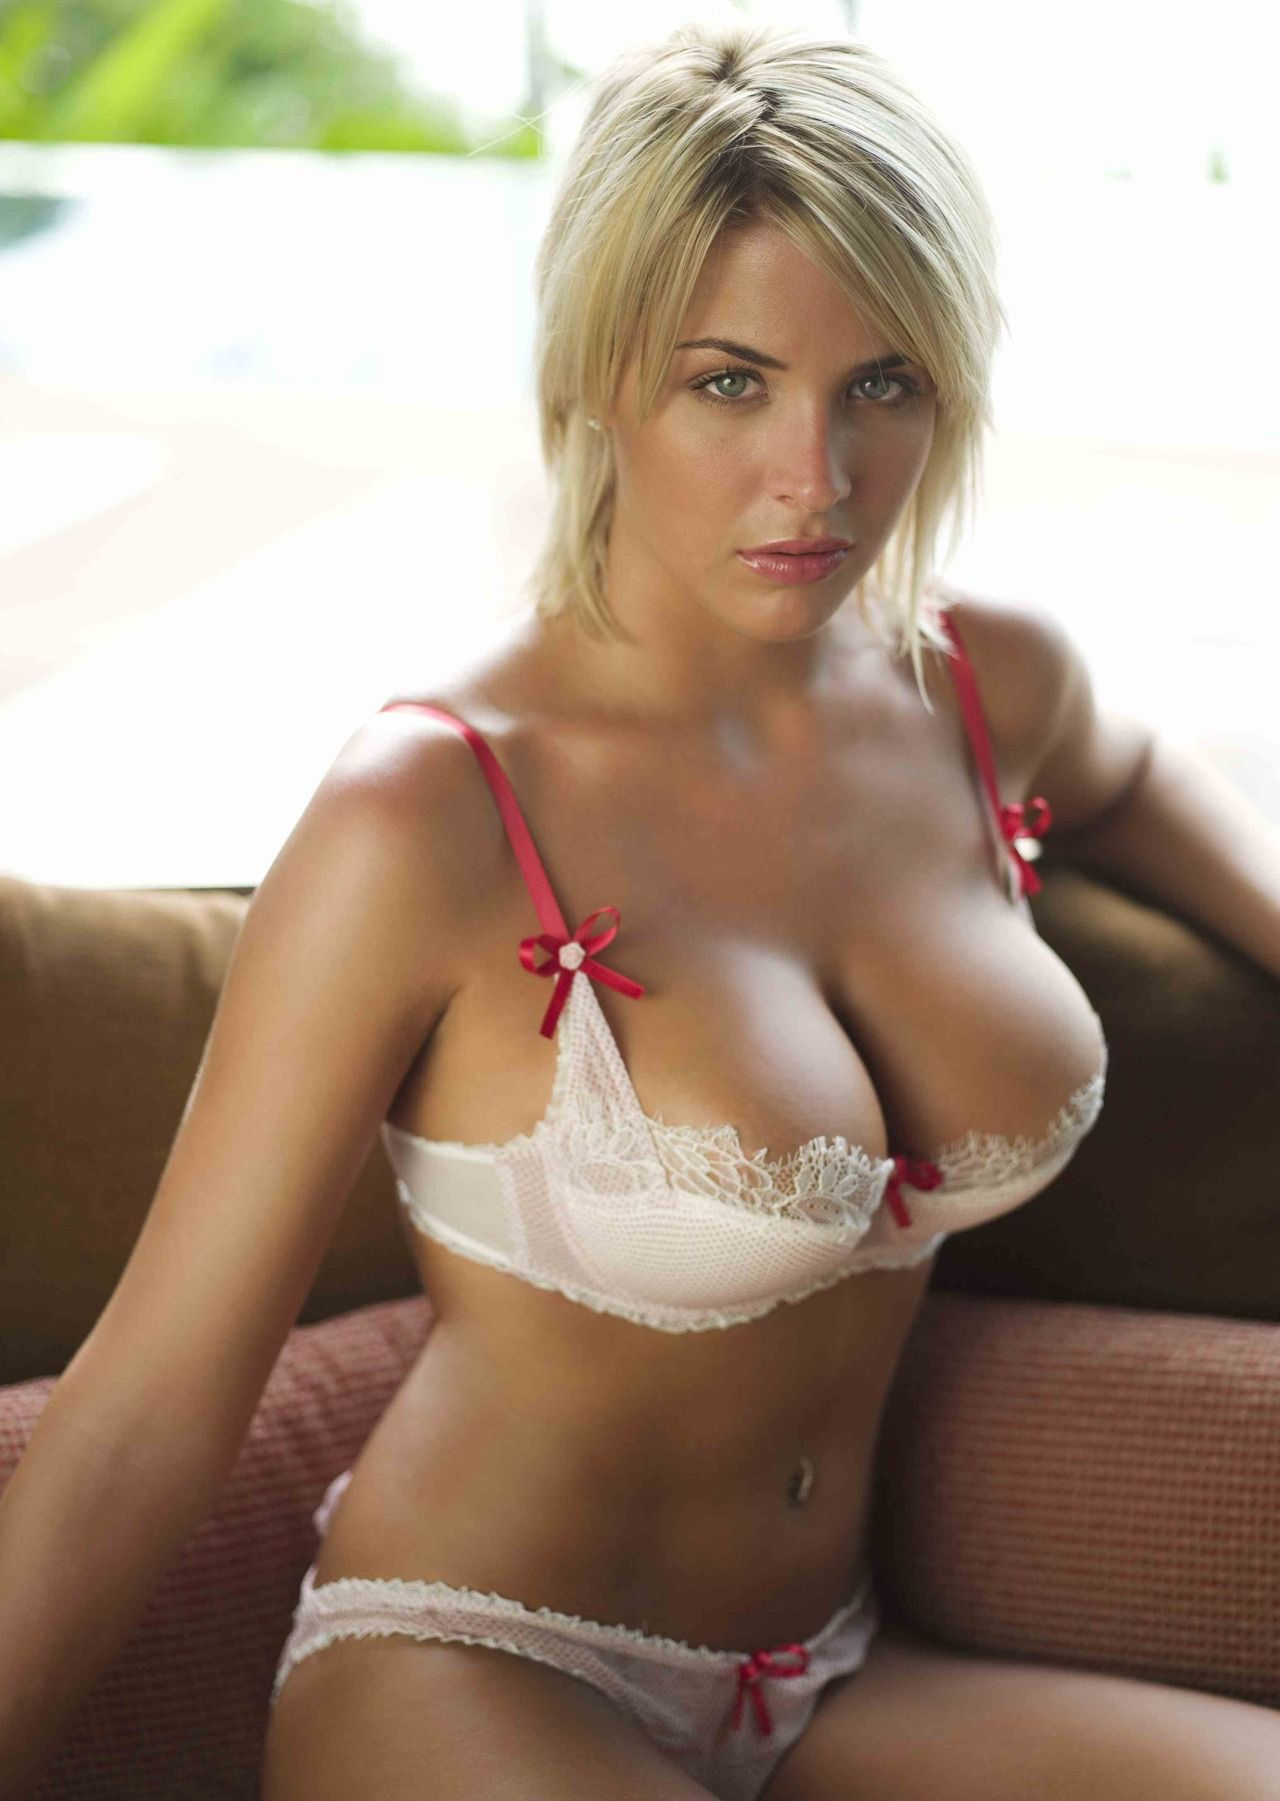 [Busty Amateurs] Gemma Atkinson